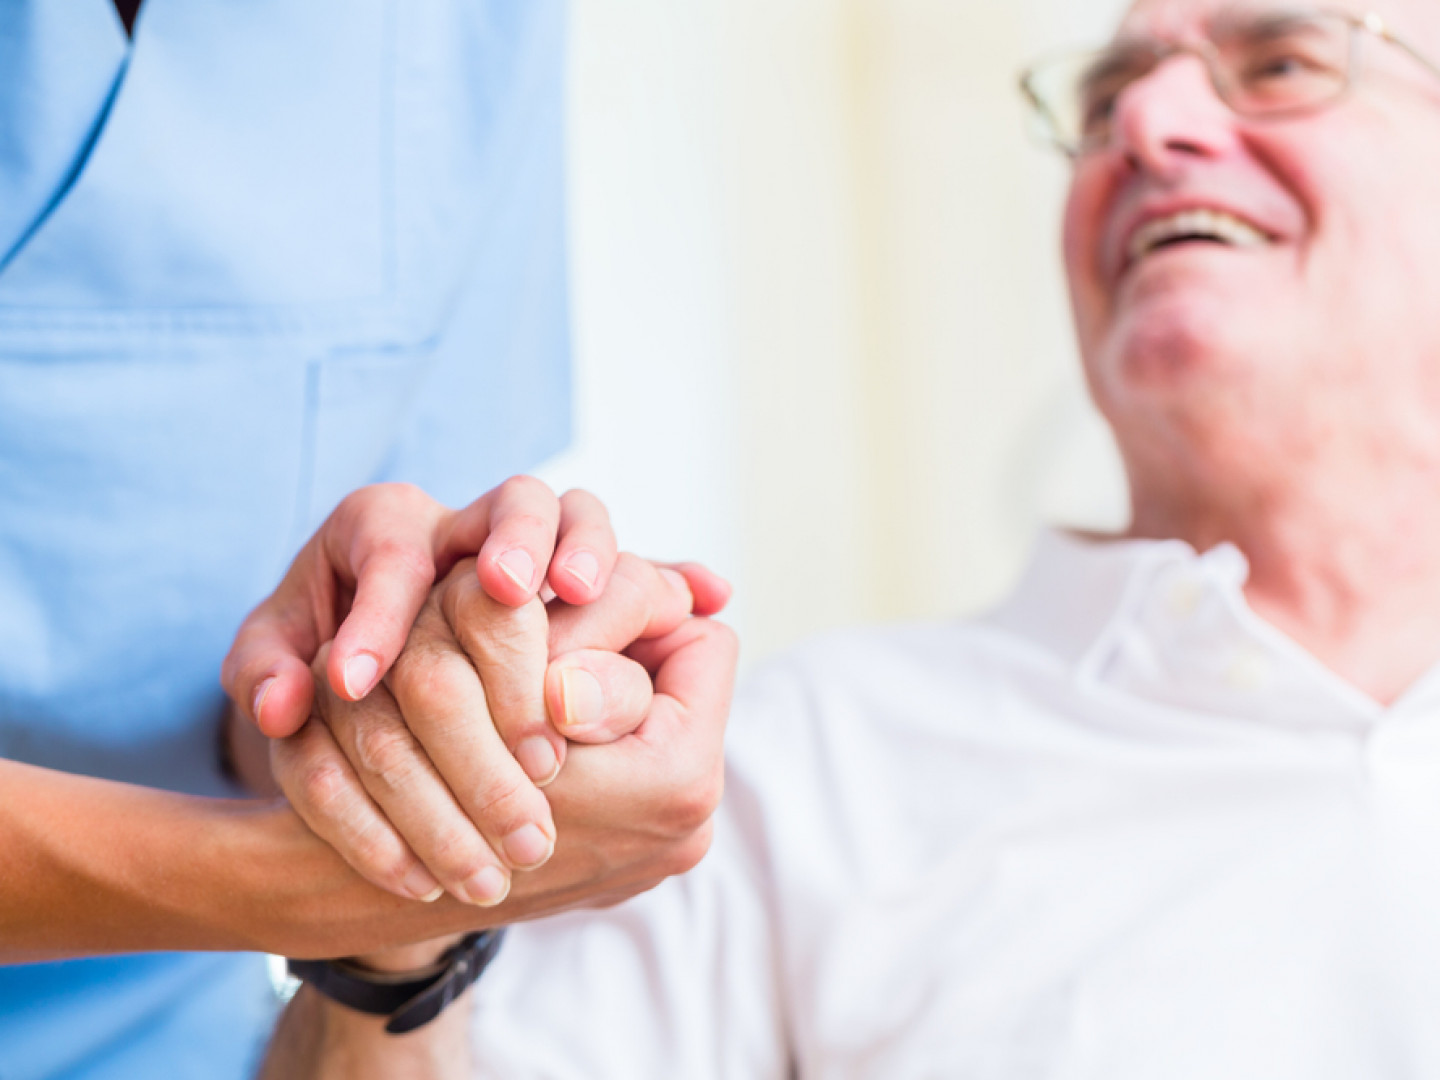 We can provide care to any senior